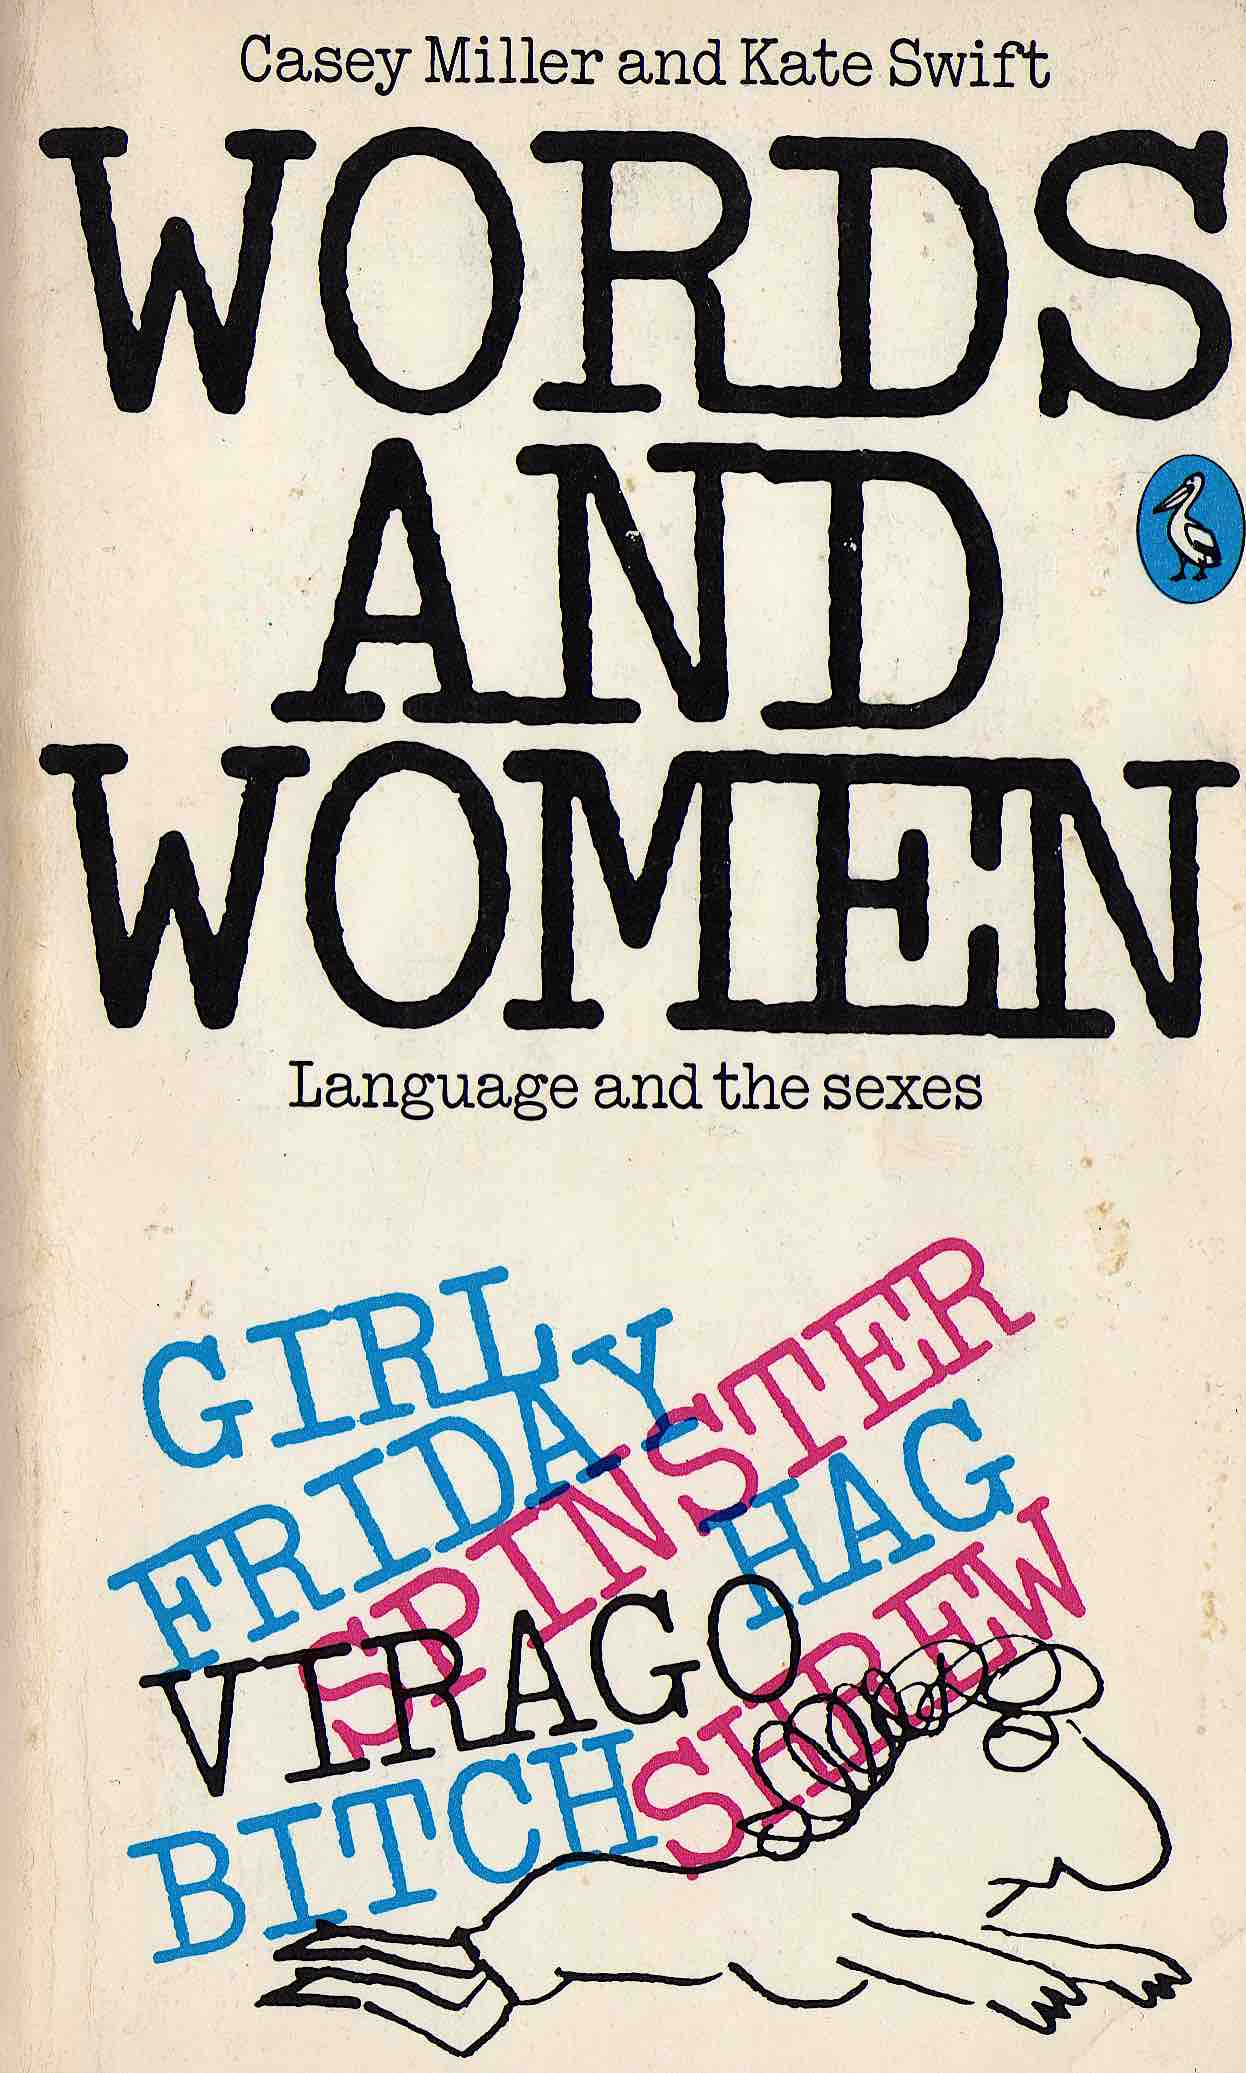 Words and women cover